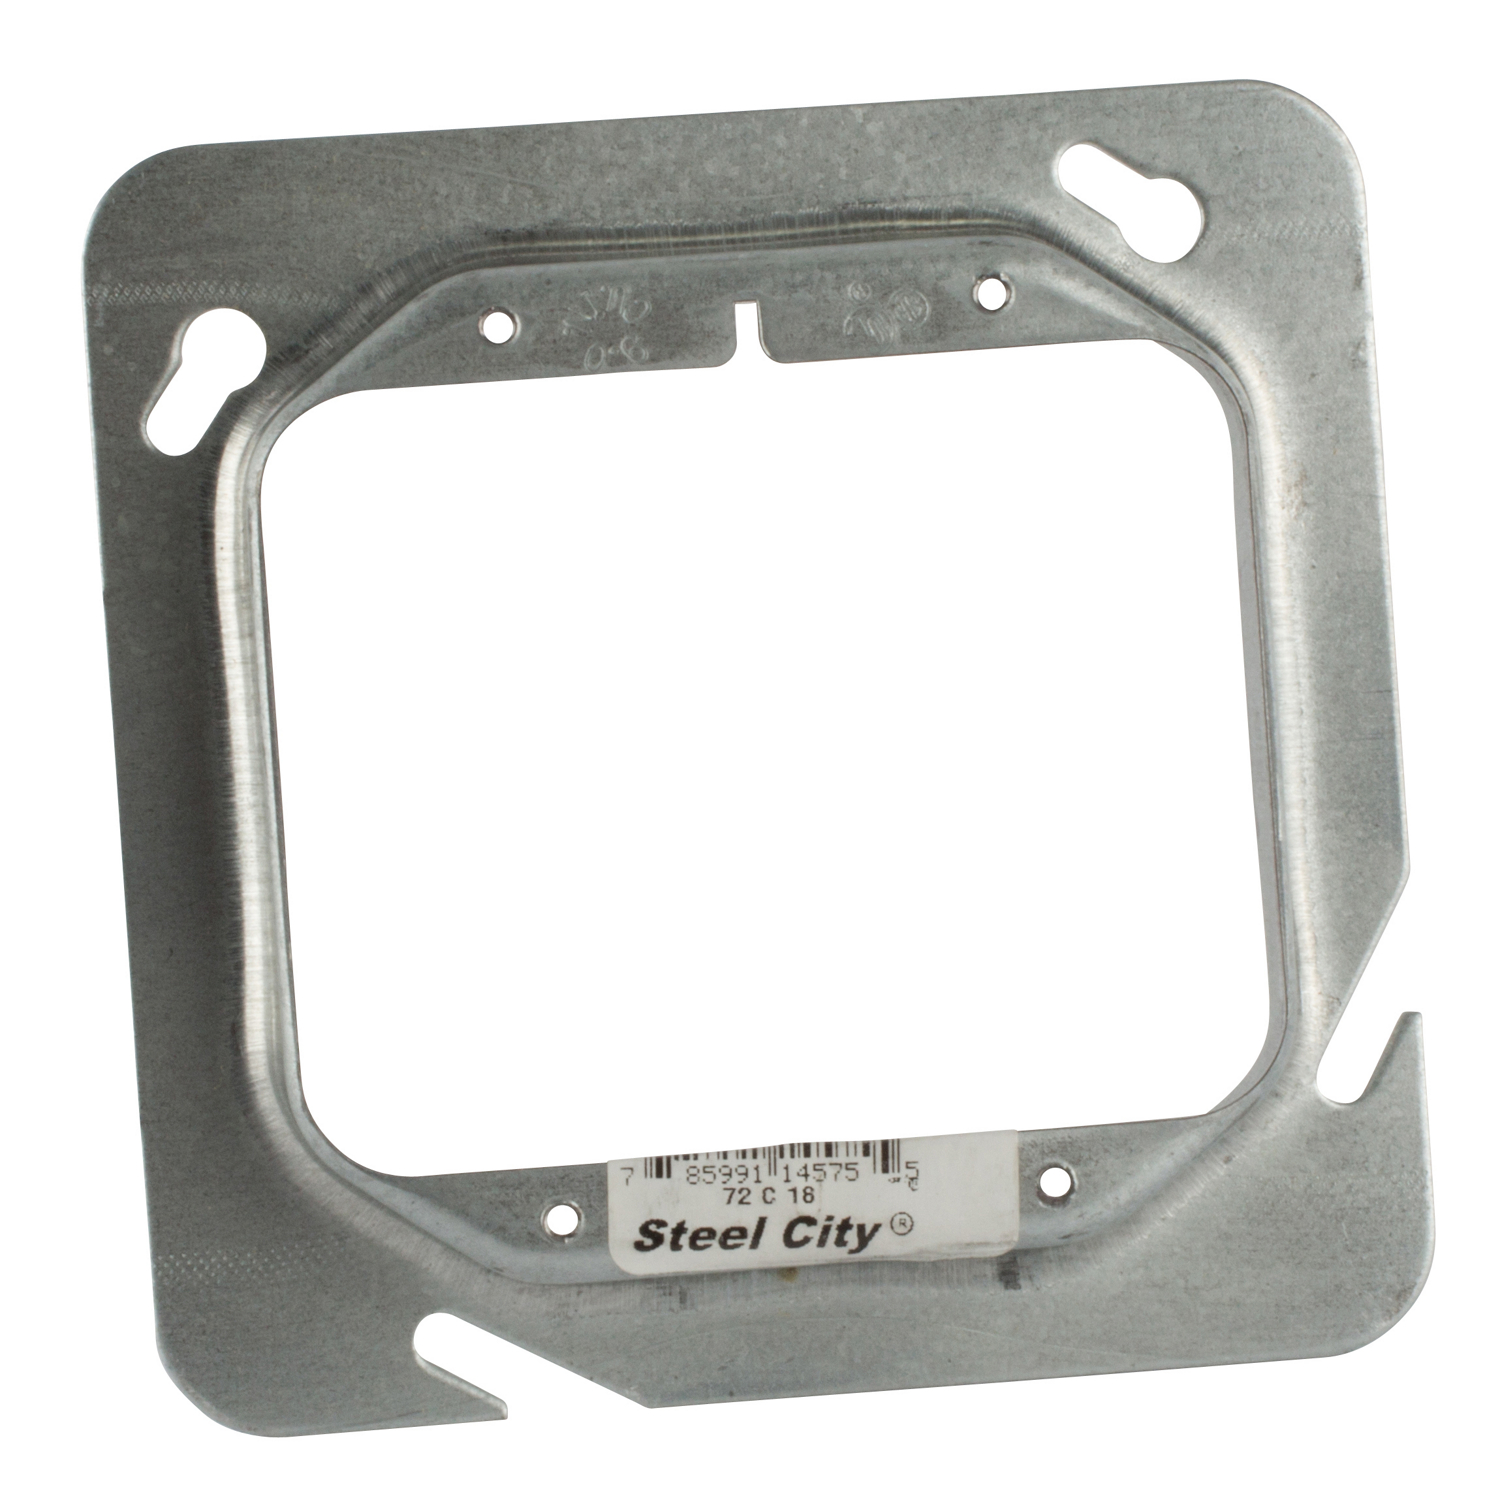 Steel City,72-C-18,Steel City® 72-C-18 Outlet Square Box Cover, 4-11/16 in L x 4-11/16 in W, Steel